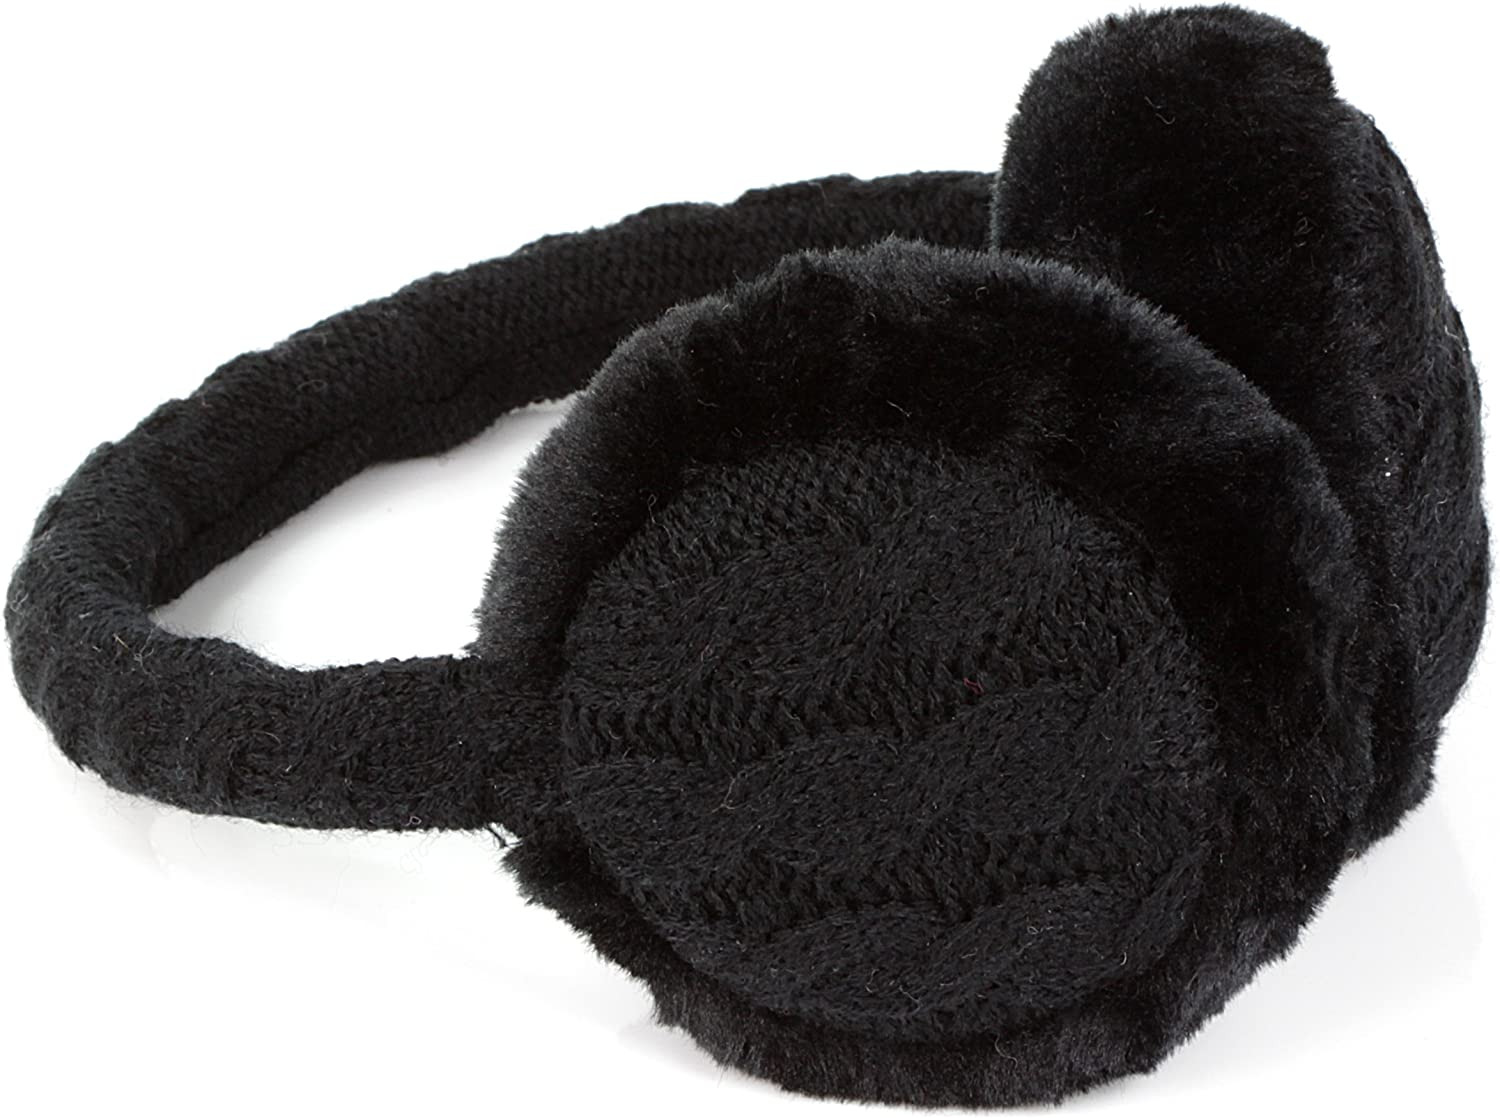 Singapore Greeting Building Winter Earmuffs Ear Warmers Faux Fur Foldable Plush Outdoor Gift